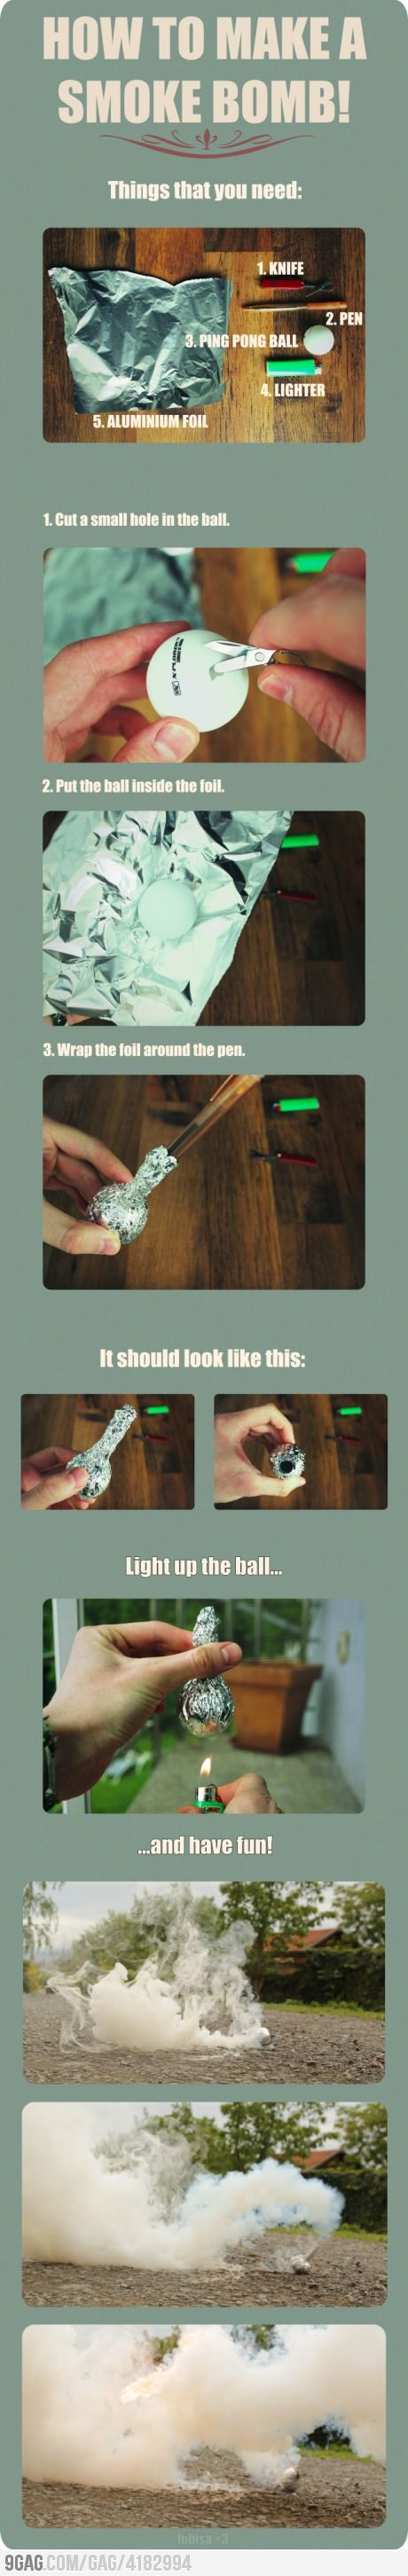 How to make a smoke bomb. I forgot I knew how to do this, totally works!